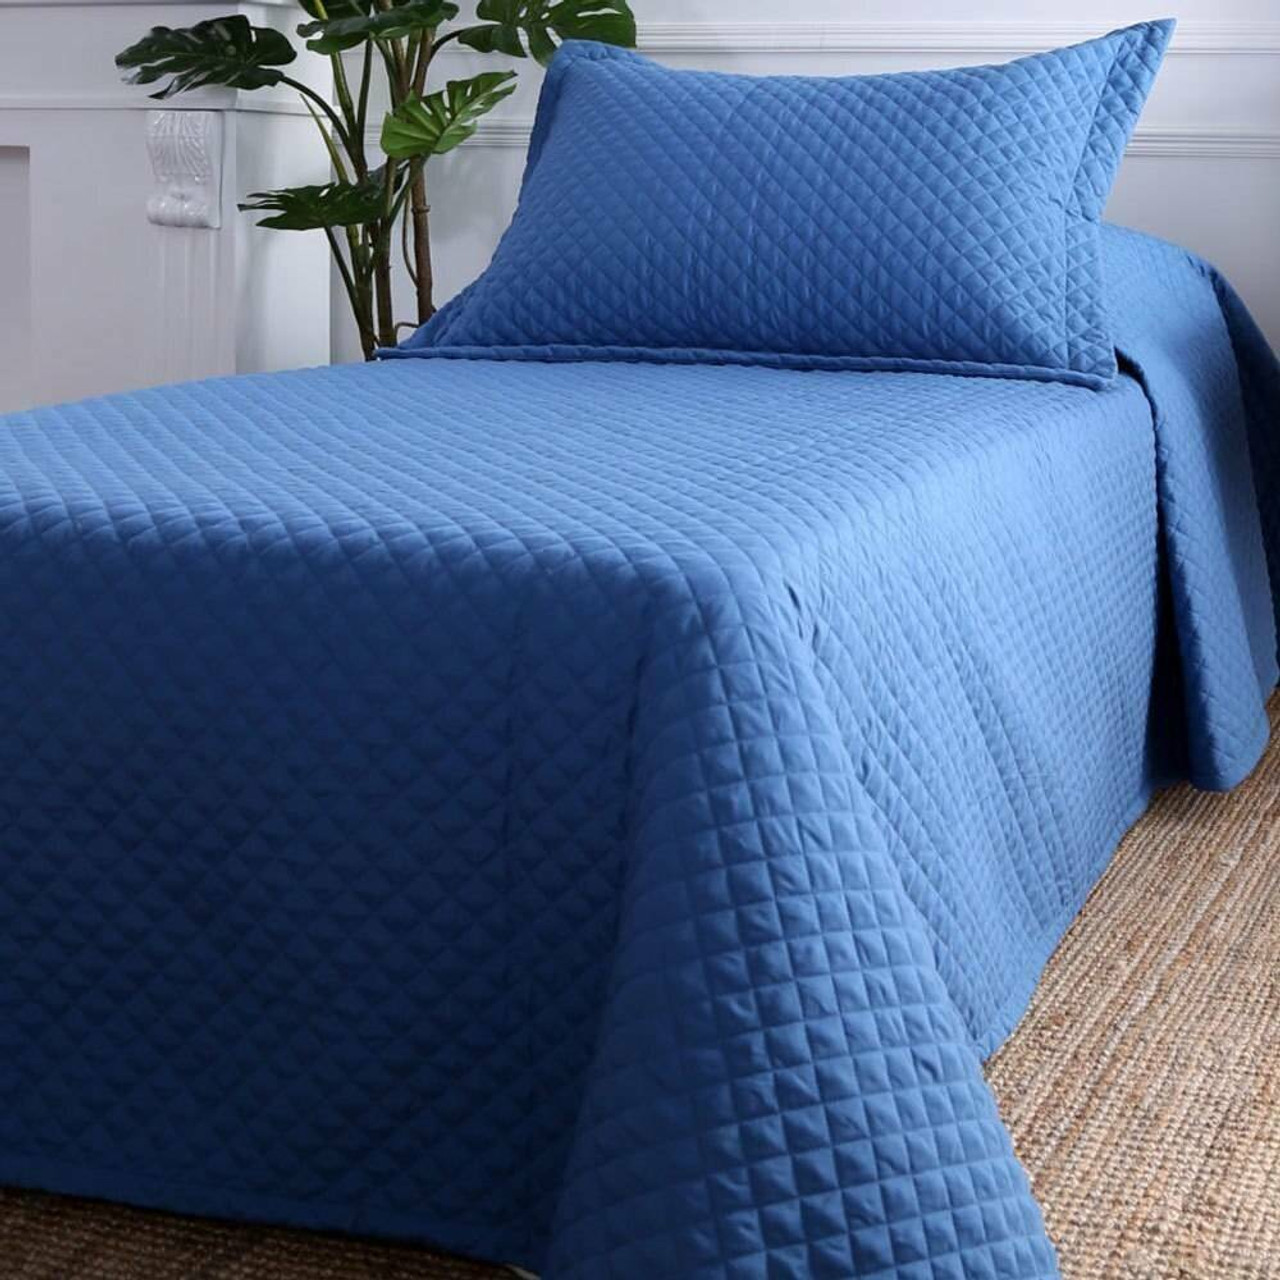 Berkshire Bedding RADIANCE DIAMOND QUILT COVERLETS and MORE